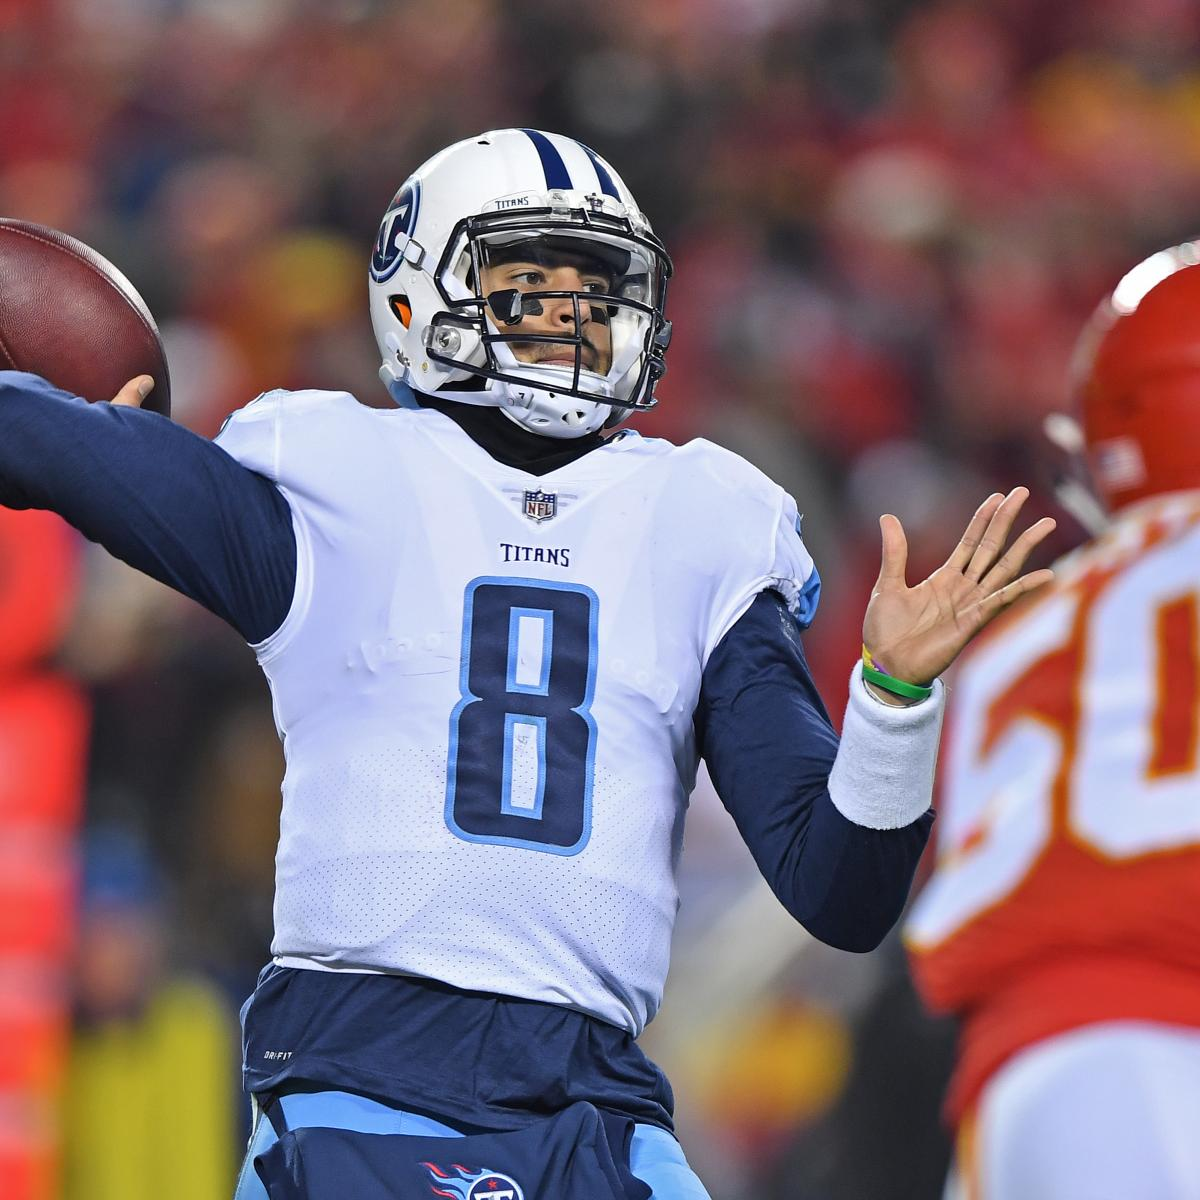 Titans vs. Patriots: TV Schedule, Odds, Ticket Info, Game Time and More